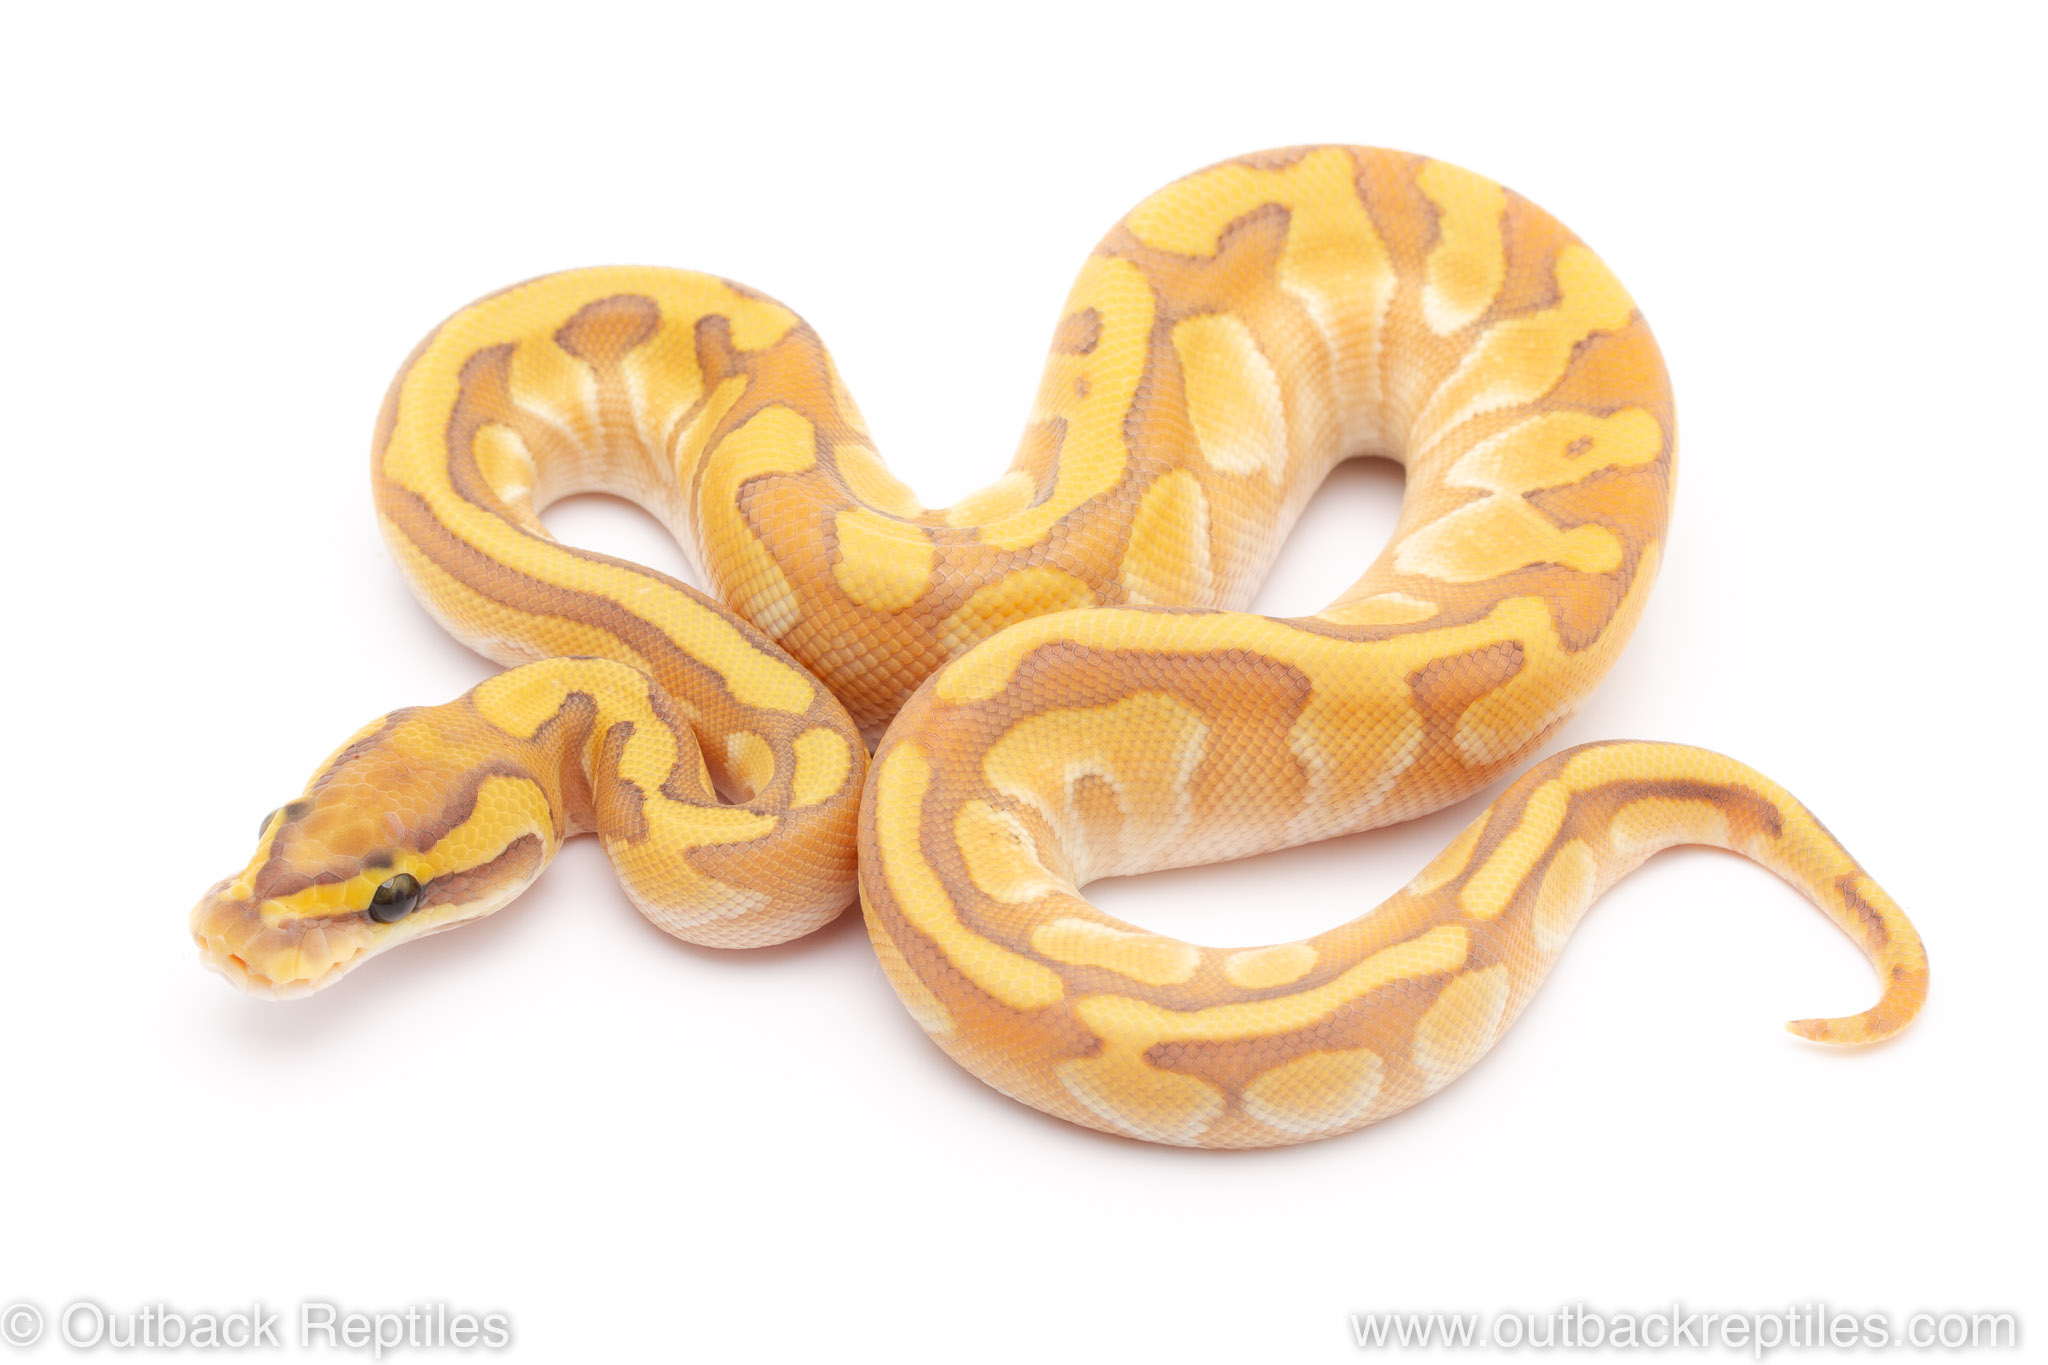 GHost enchi butter ball python for sale